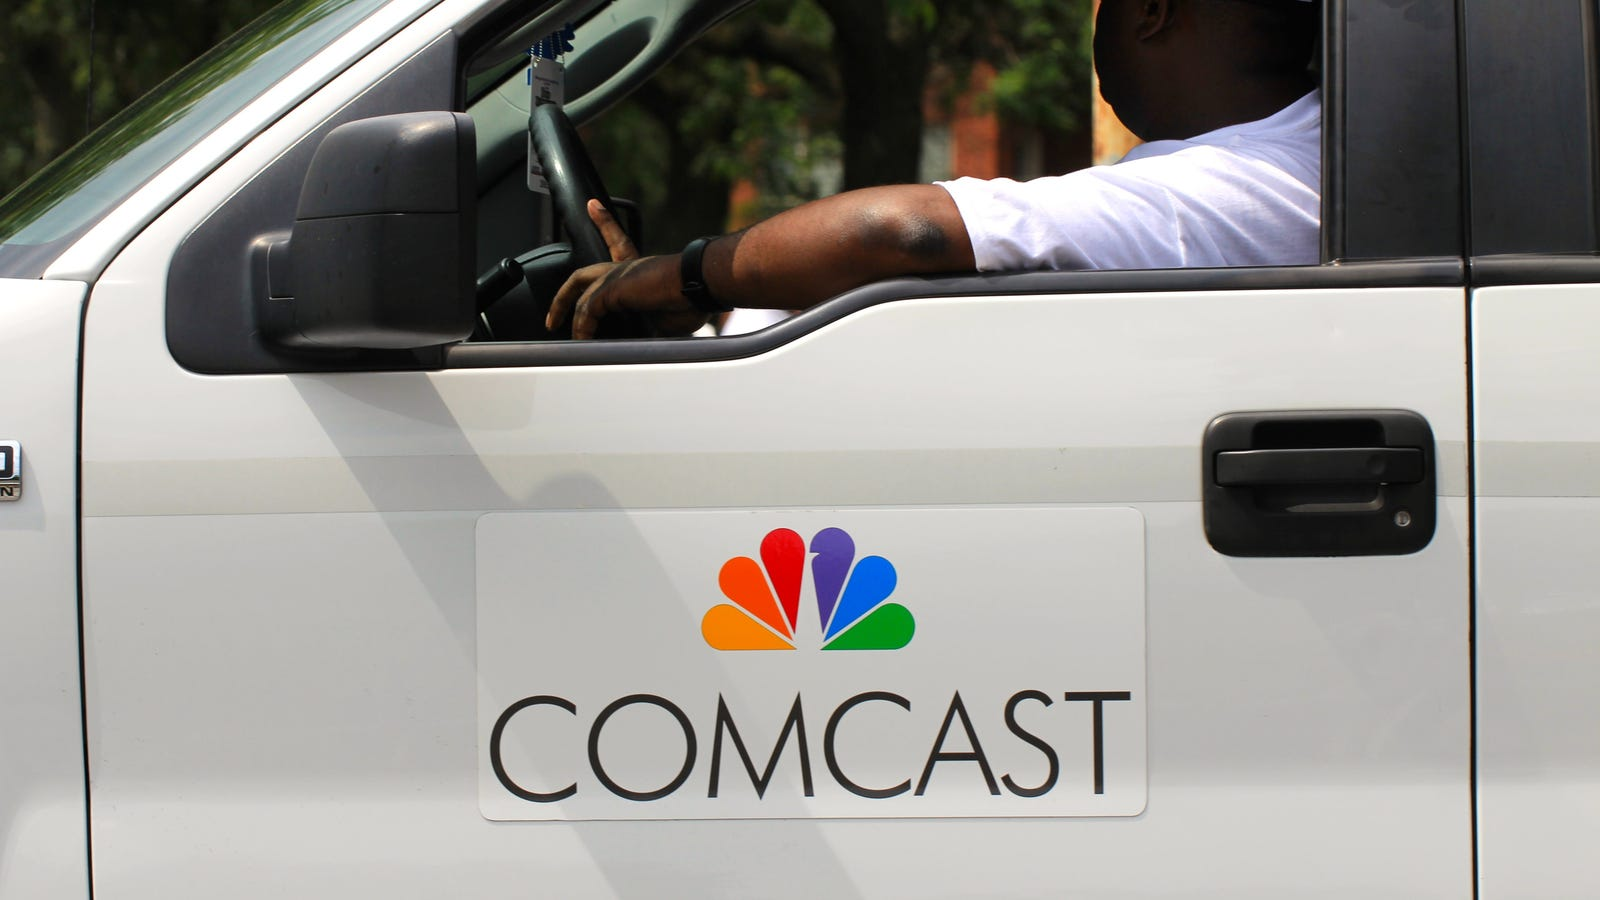 Comcast Working on Health Monitoring Device For the Elderly But Don't Call it an Alexa - Gizmodo